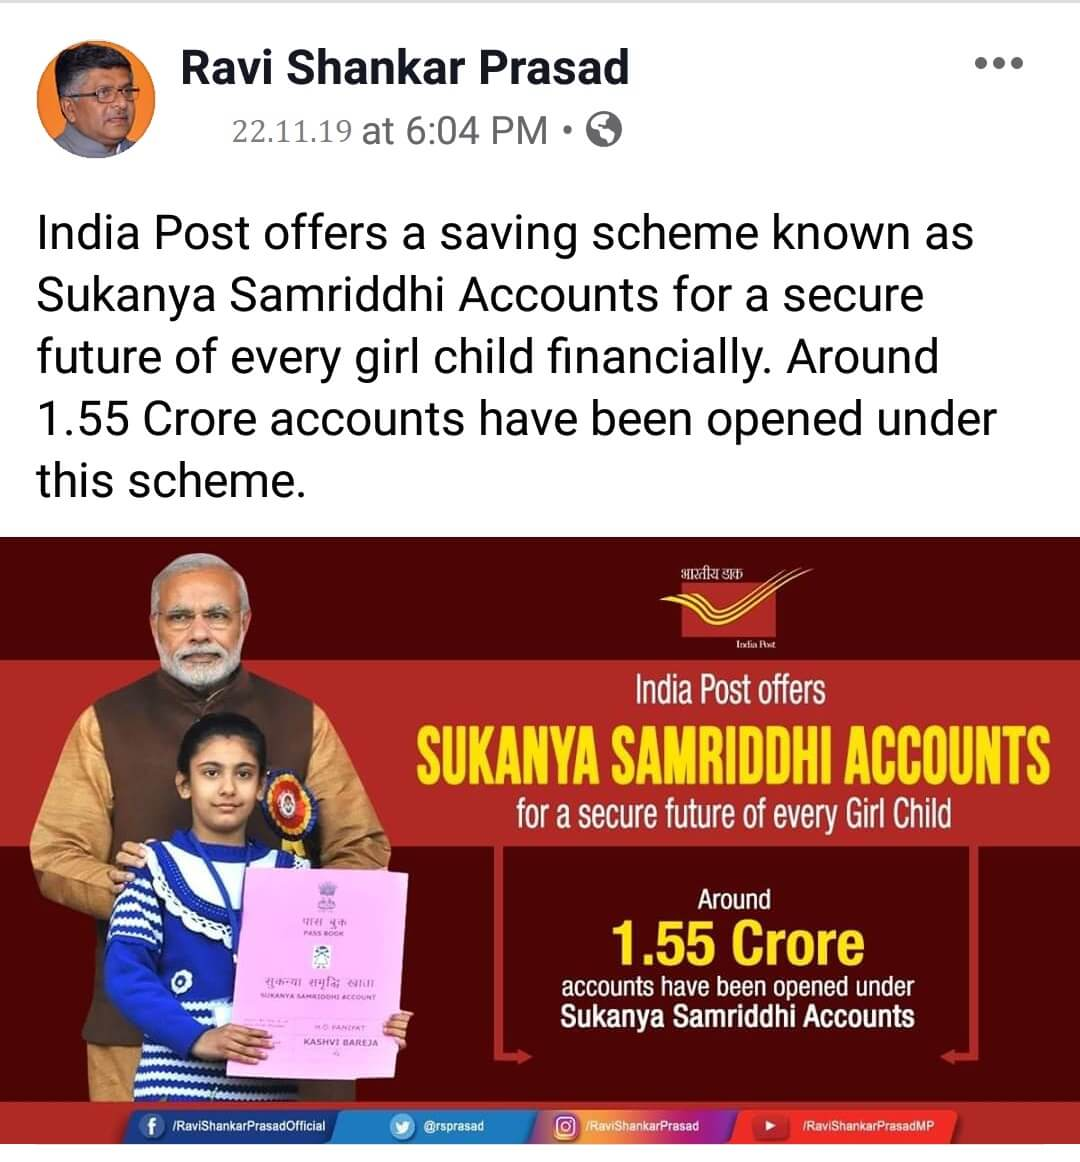 India Post offers a saving scheme known as Sukanya Samriddhi Accounts for secure future of every girl child financially. Around 1.55 Crore accounts have been opended under this scheme in India Post.